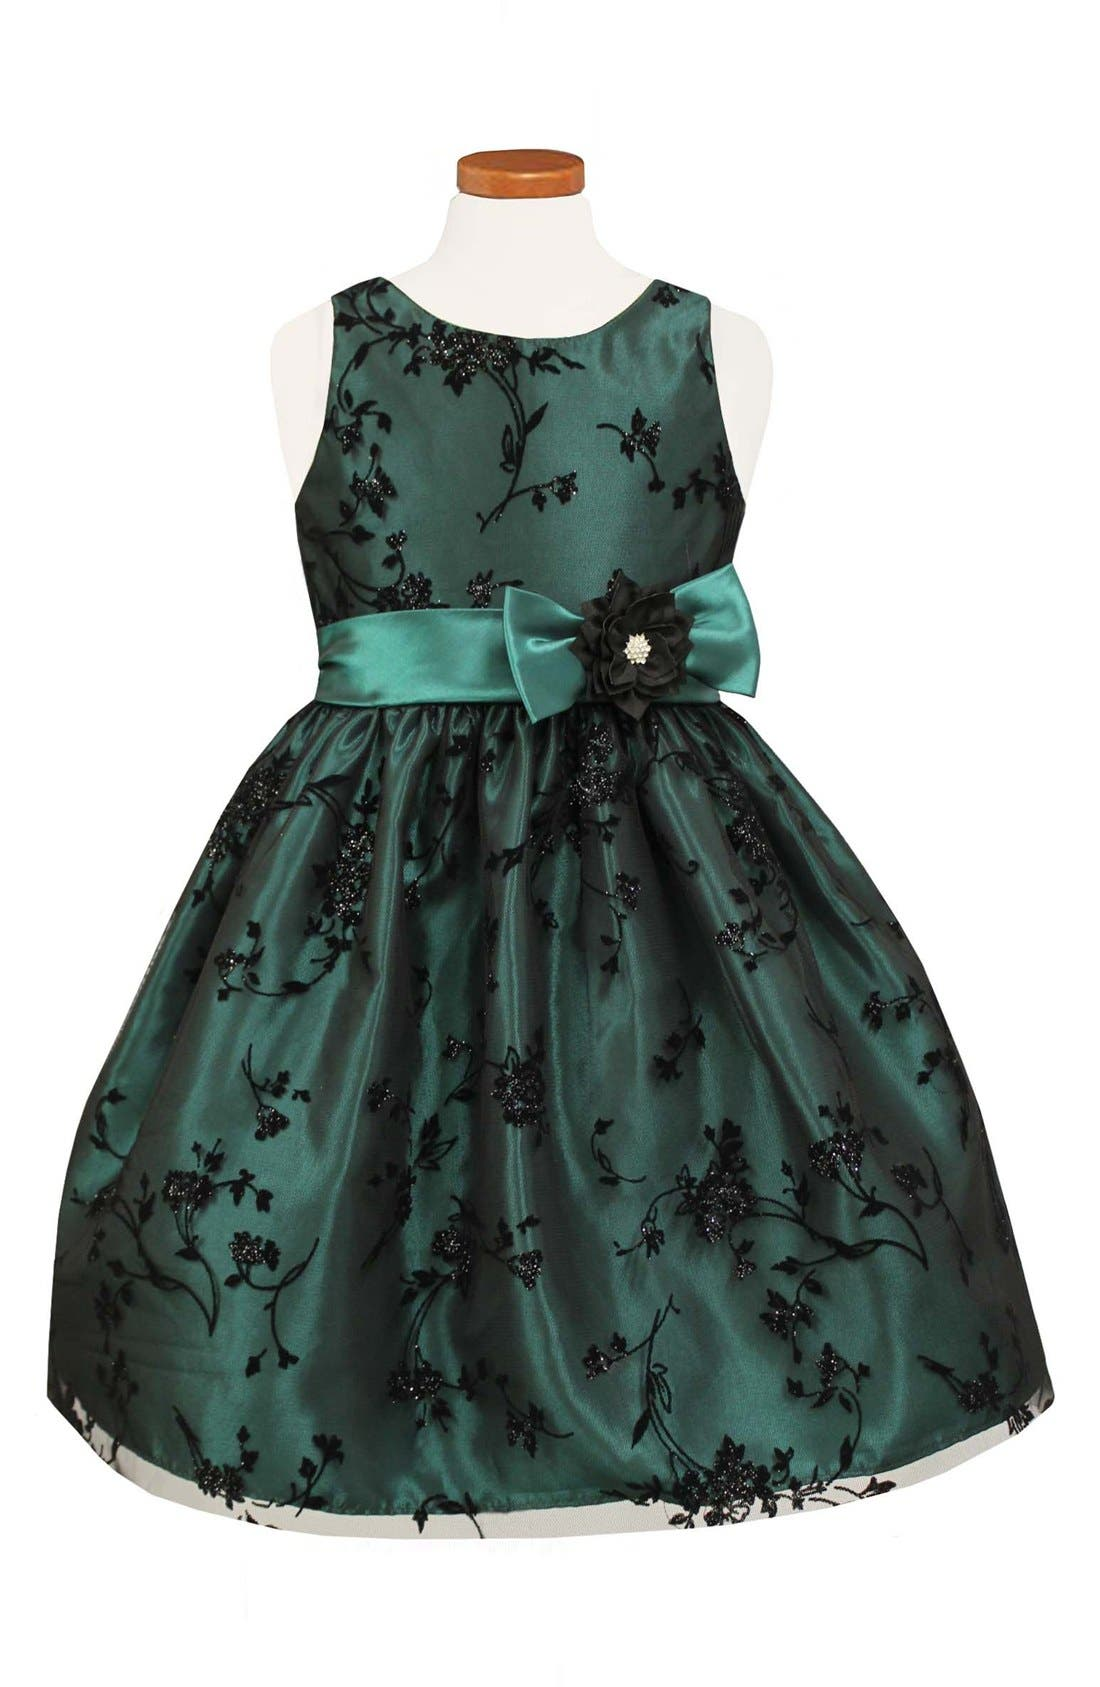 Main Image - Sorbet Taffeta Fit & Flare Dress (Toddler Girls, Little Girls & Big Girls)